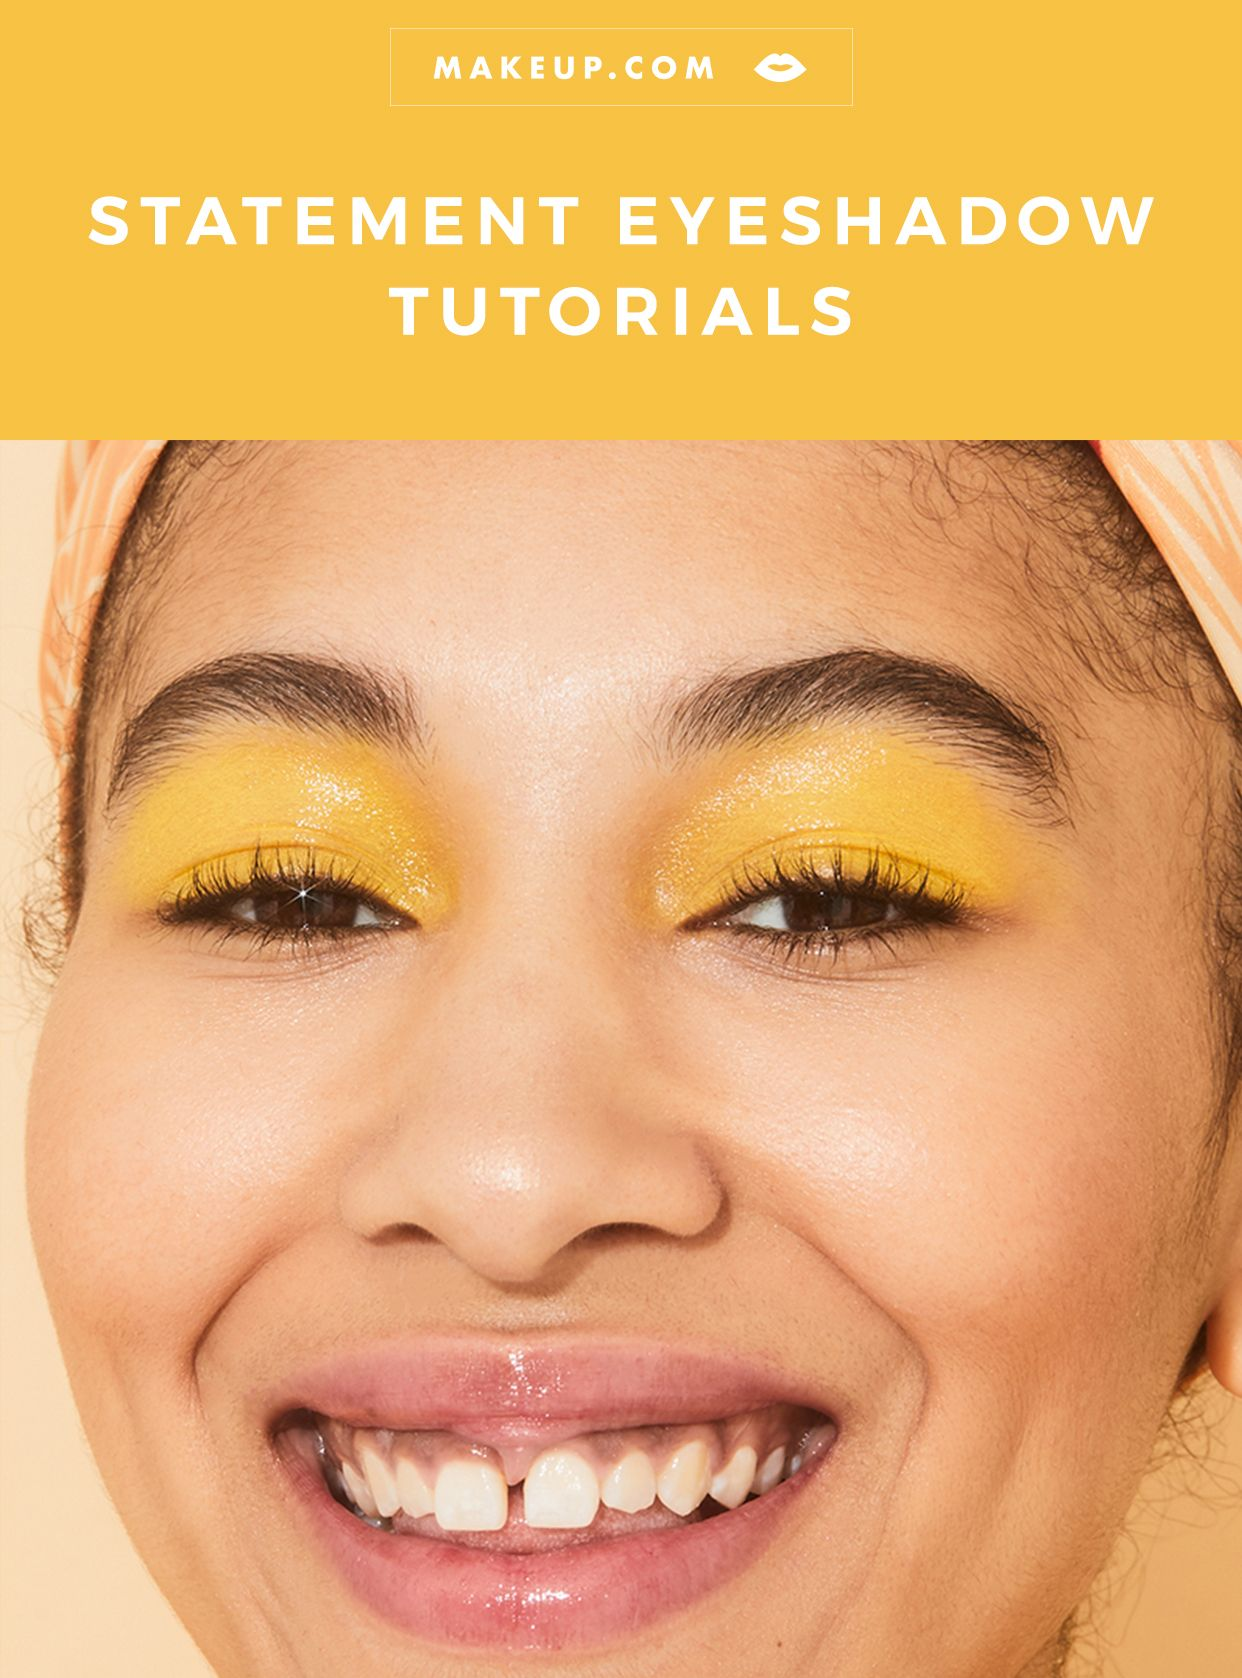 5 Statement Eye Looks for Summer Eyeshadow looks